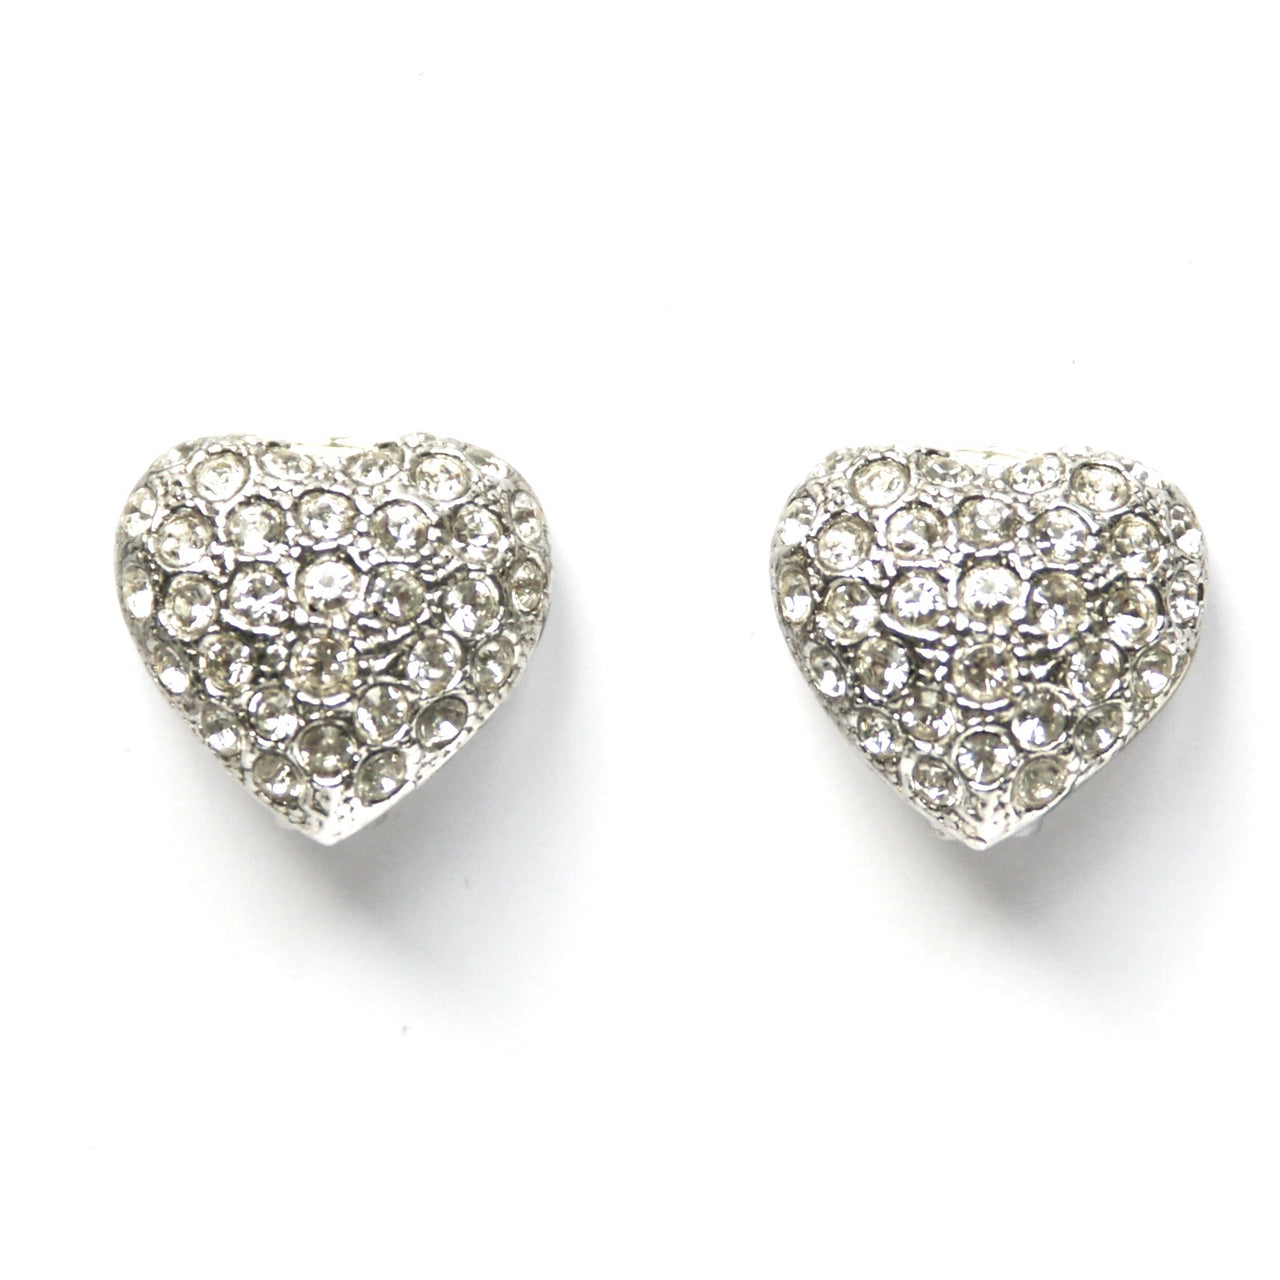 1980s Vintage Diamanté Heart Clip On Earrings